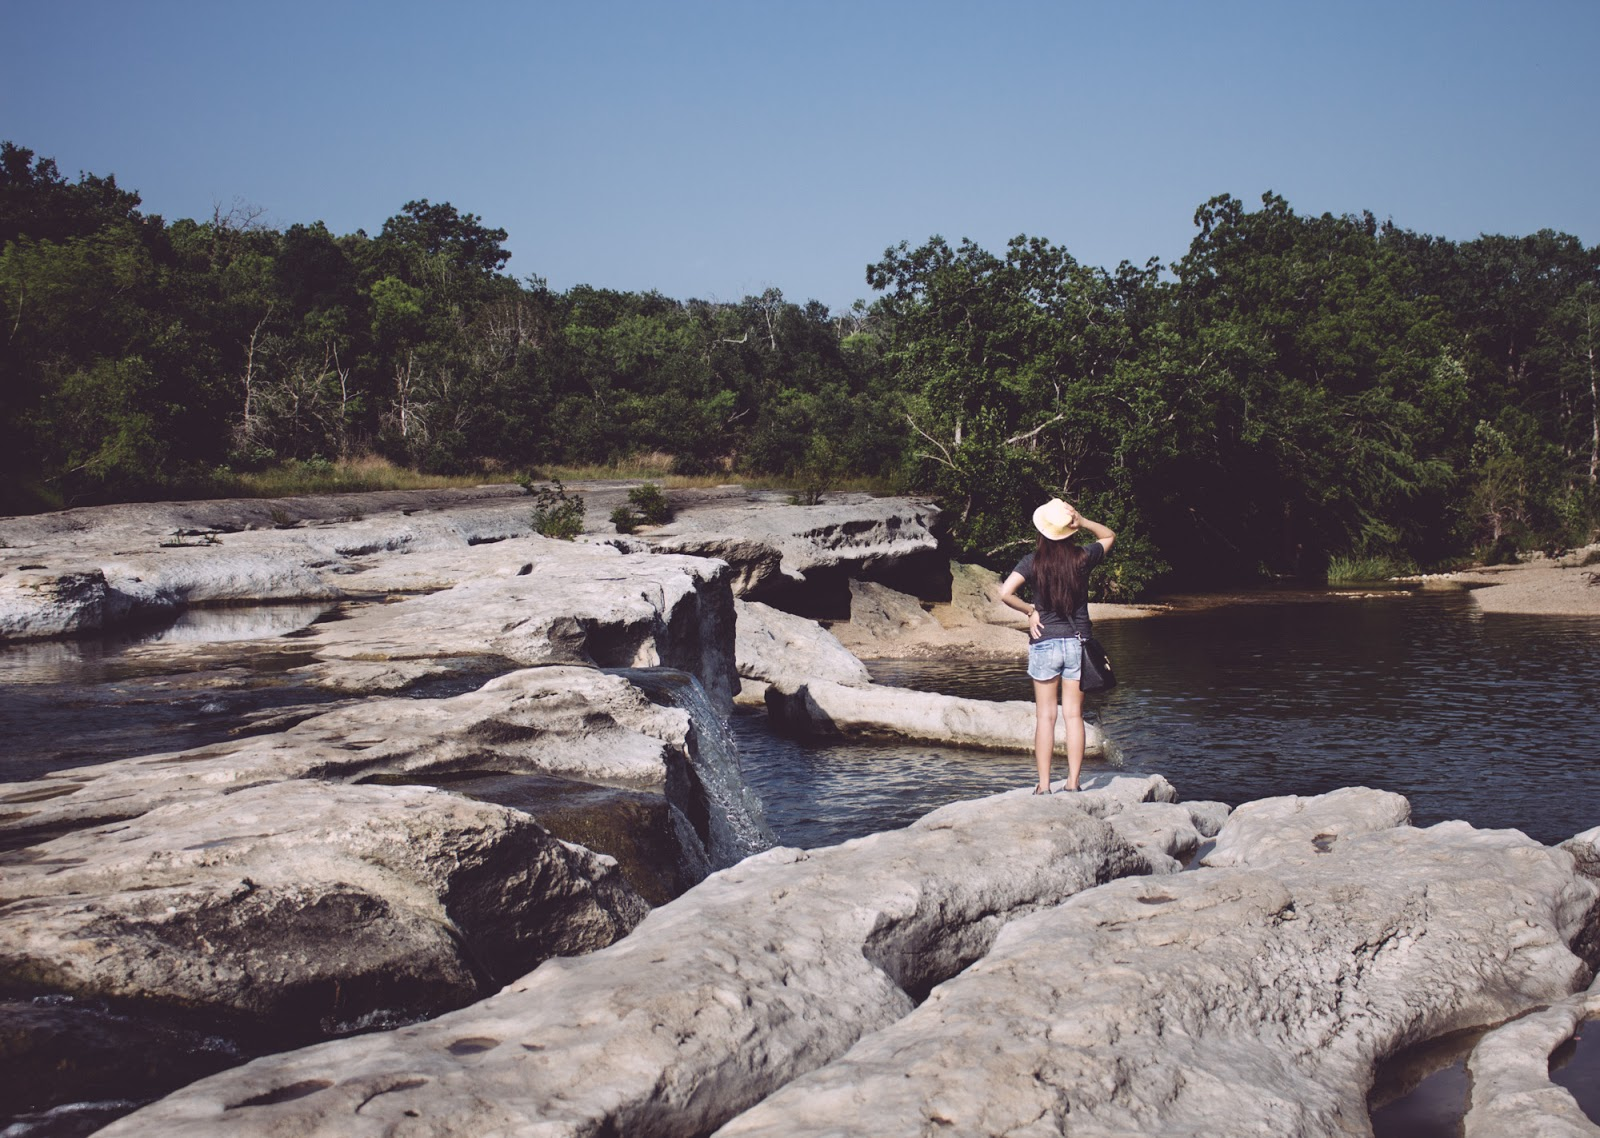 McKinney Falls State Park: Things To Do in Austin, Texas USA